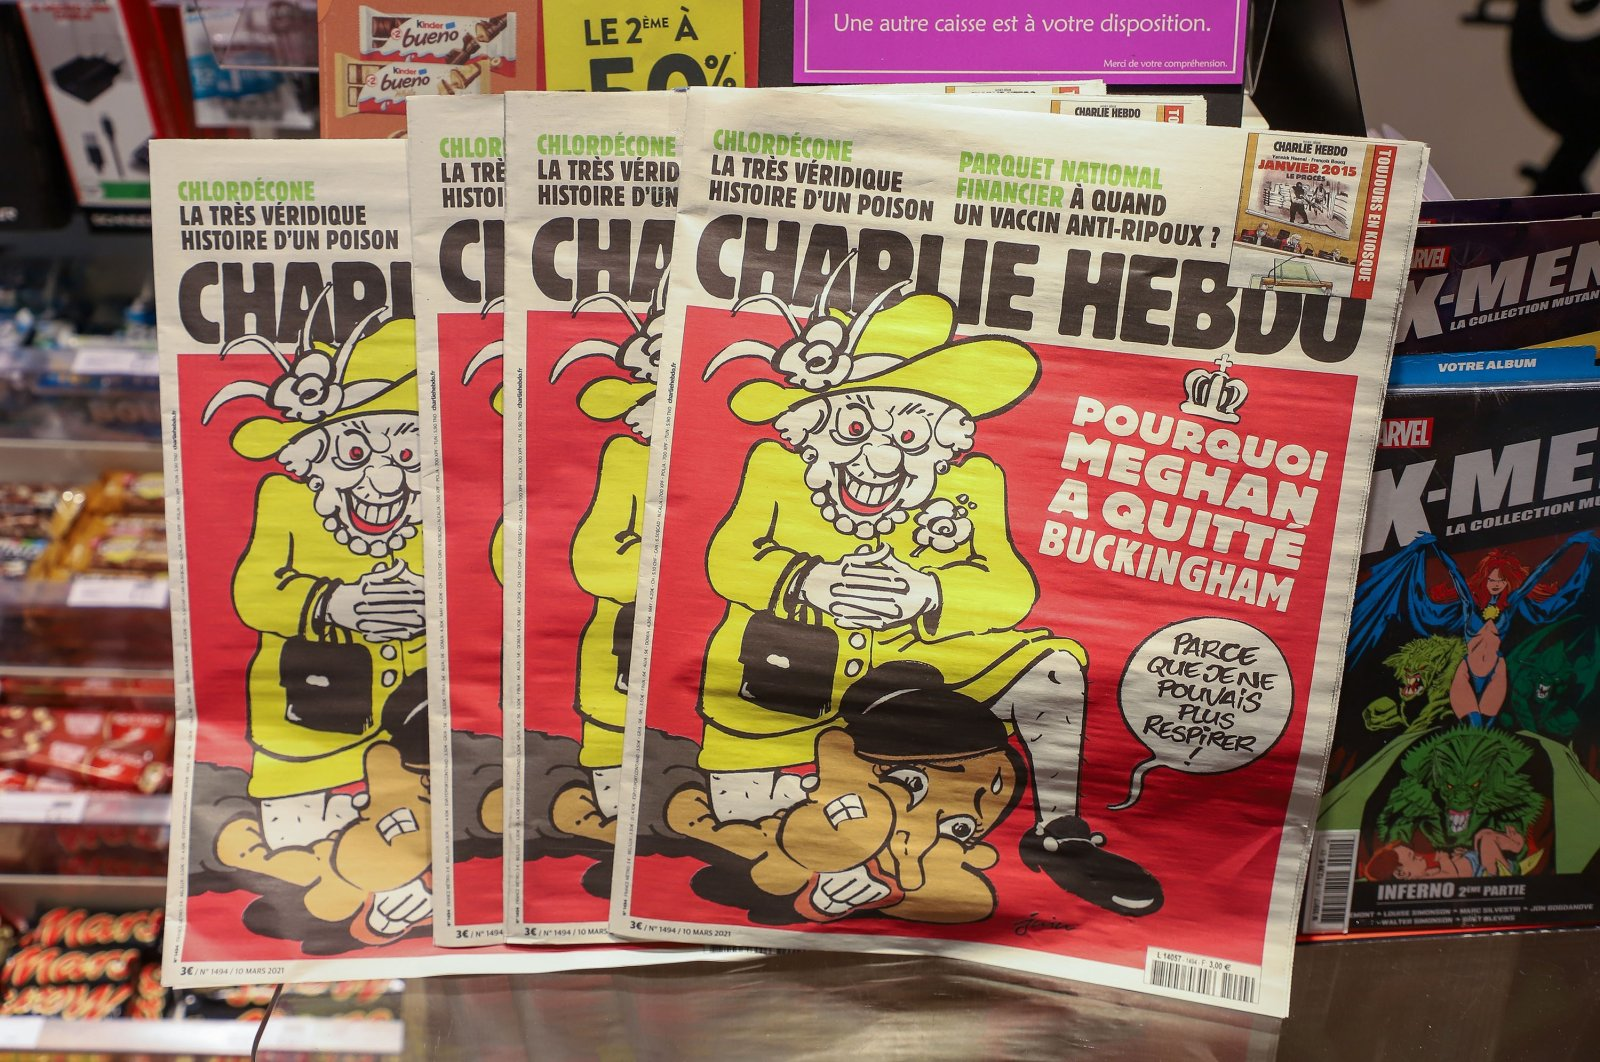 French satirical weekly Charlie Hebdo's edition displays a cover with a satirical drawing representing Queen Elizabeth kneeling on Duchess of Sussex Meghan's neck, echoing George Floyd's killing, Paris, France, March 15, 2021. (Getty Images)